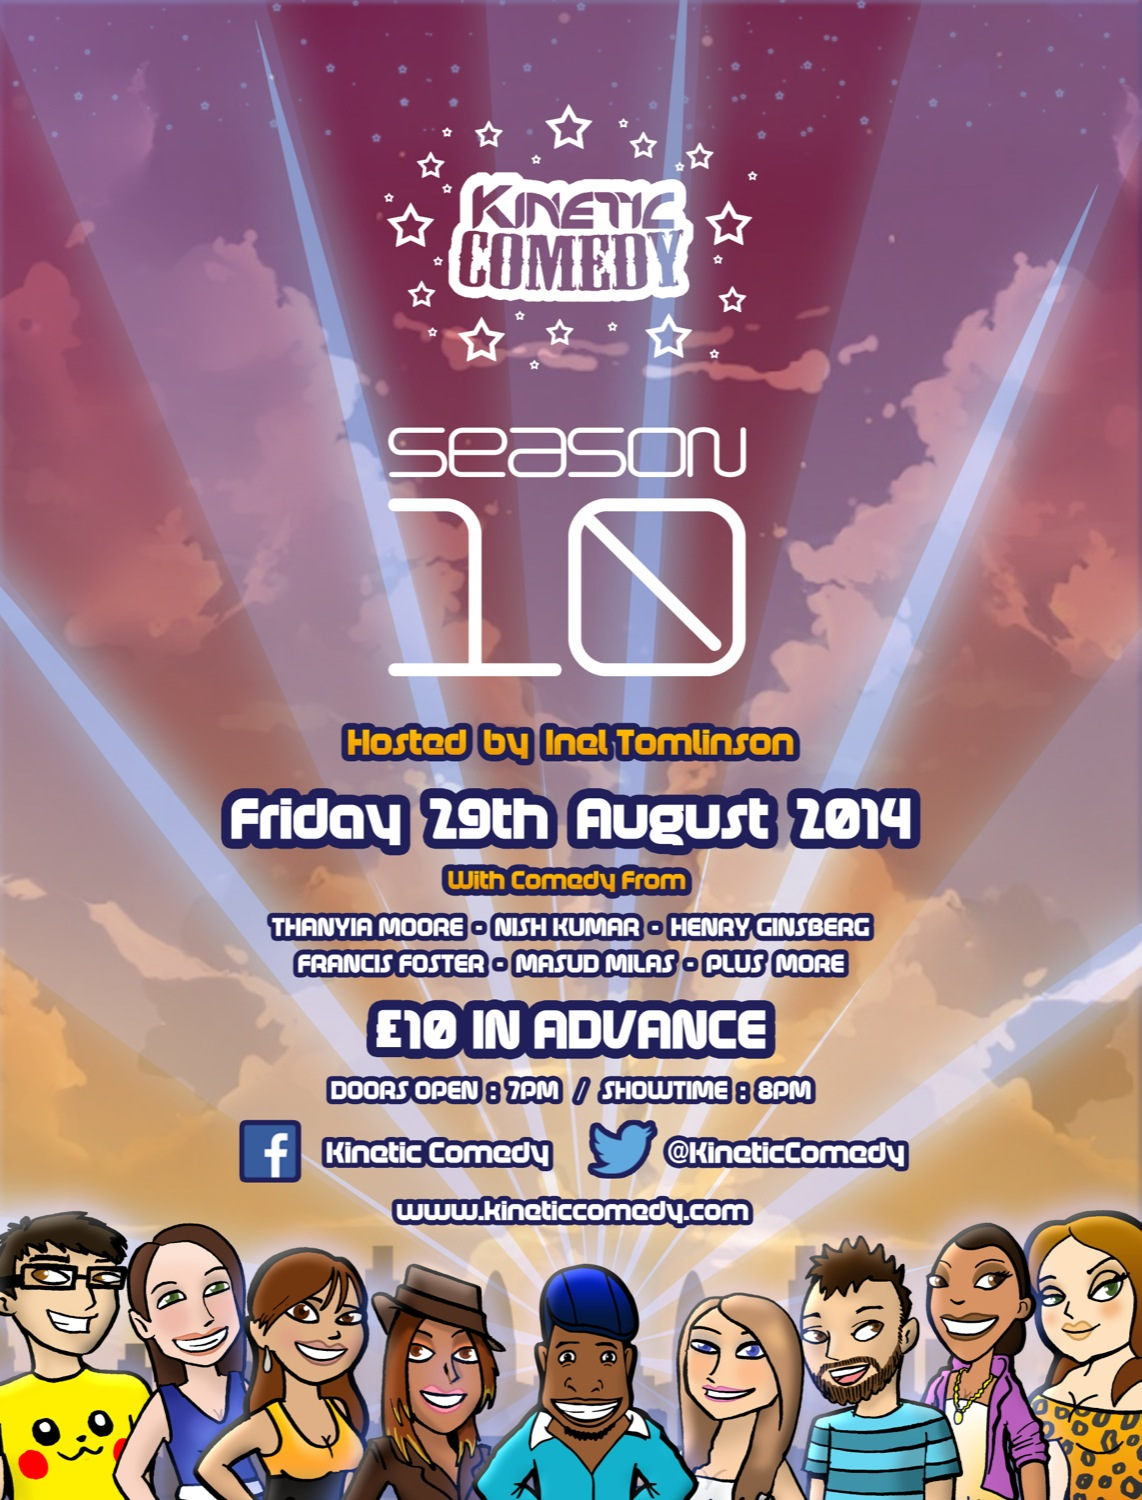 Kinetic Comedy 10.2 – Friday 29th August 2014